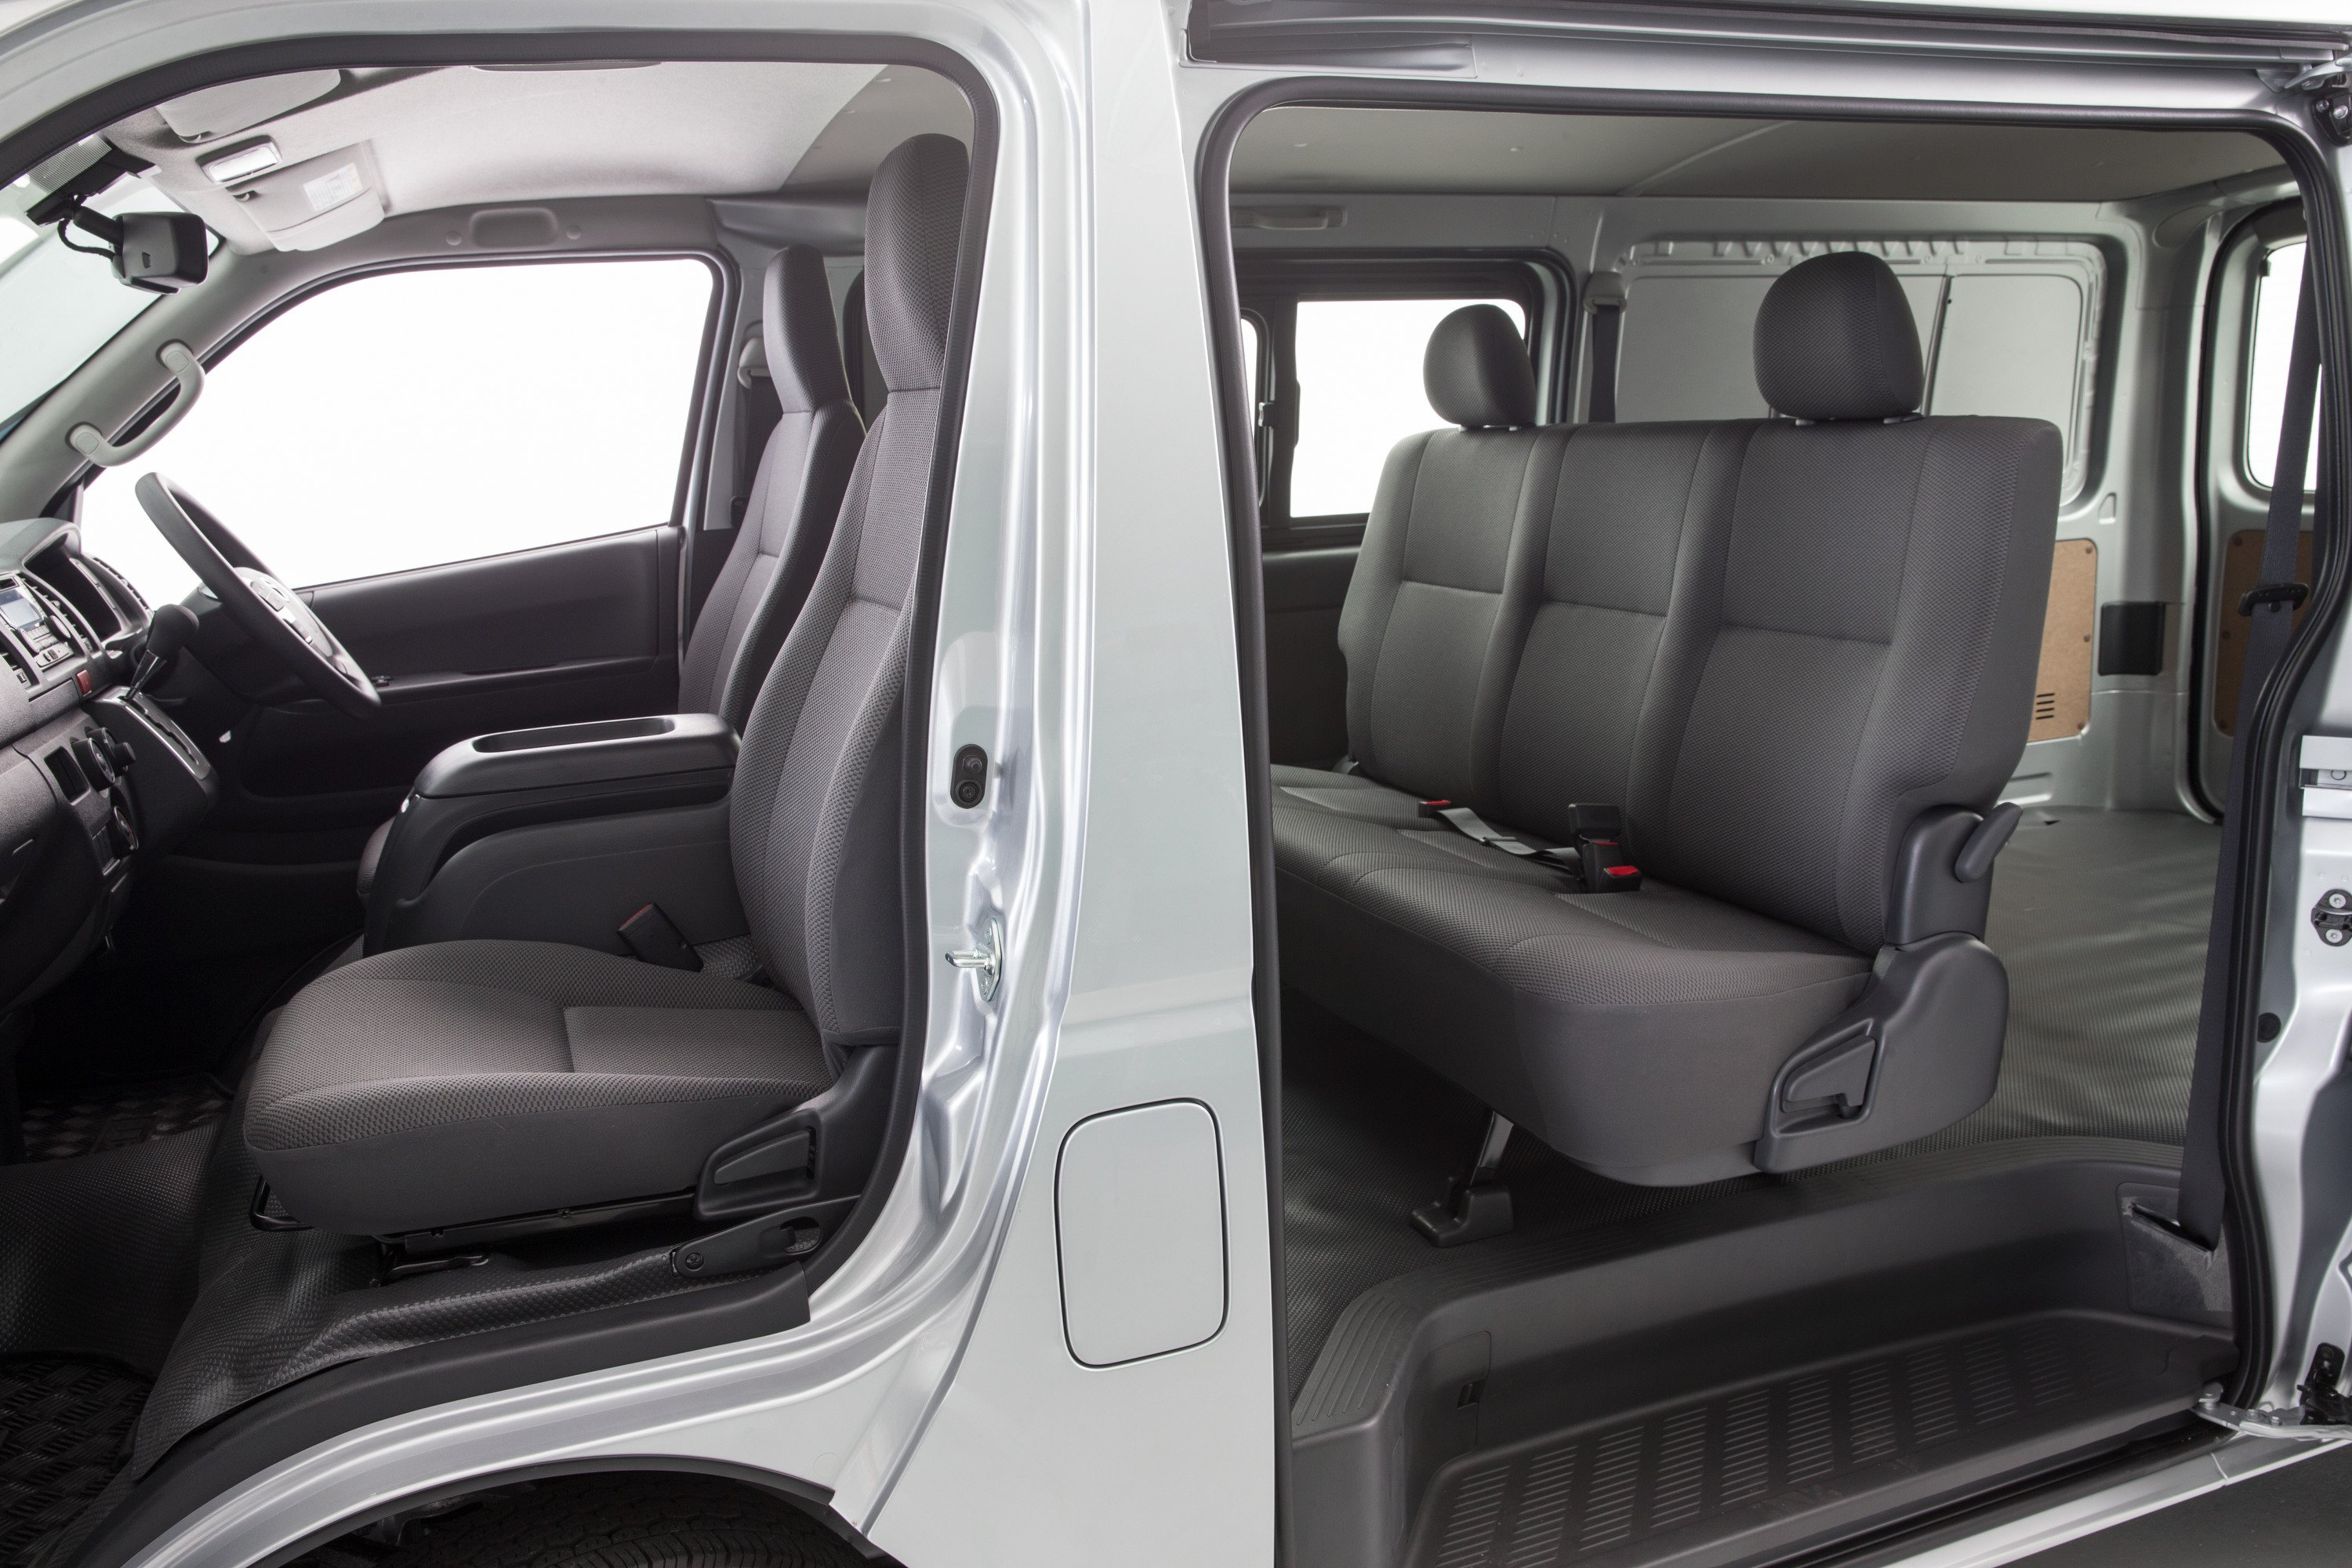 Toyota HiAce gets a range of updates - Photos (1 of 8)